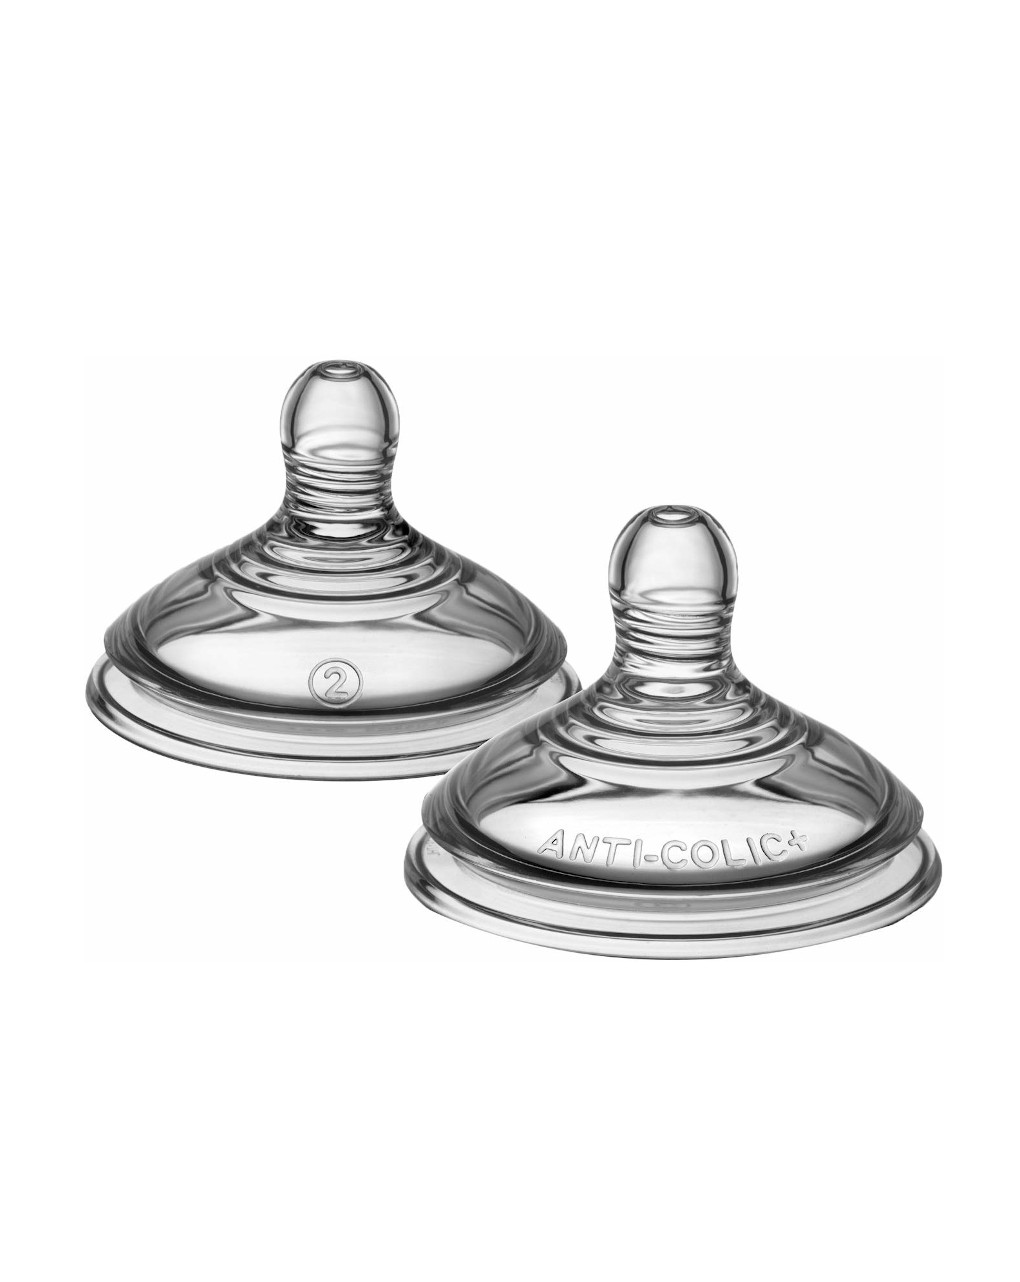 Tettarella anti-colica flusso medio tommee tippee - Tommee Tippee